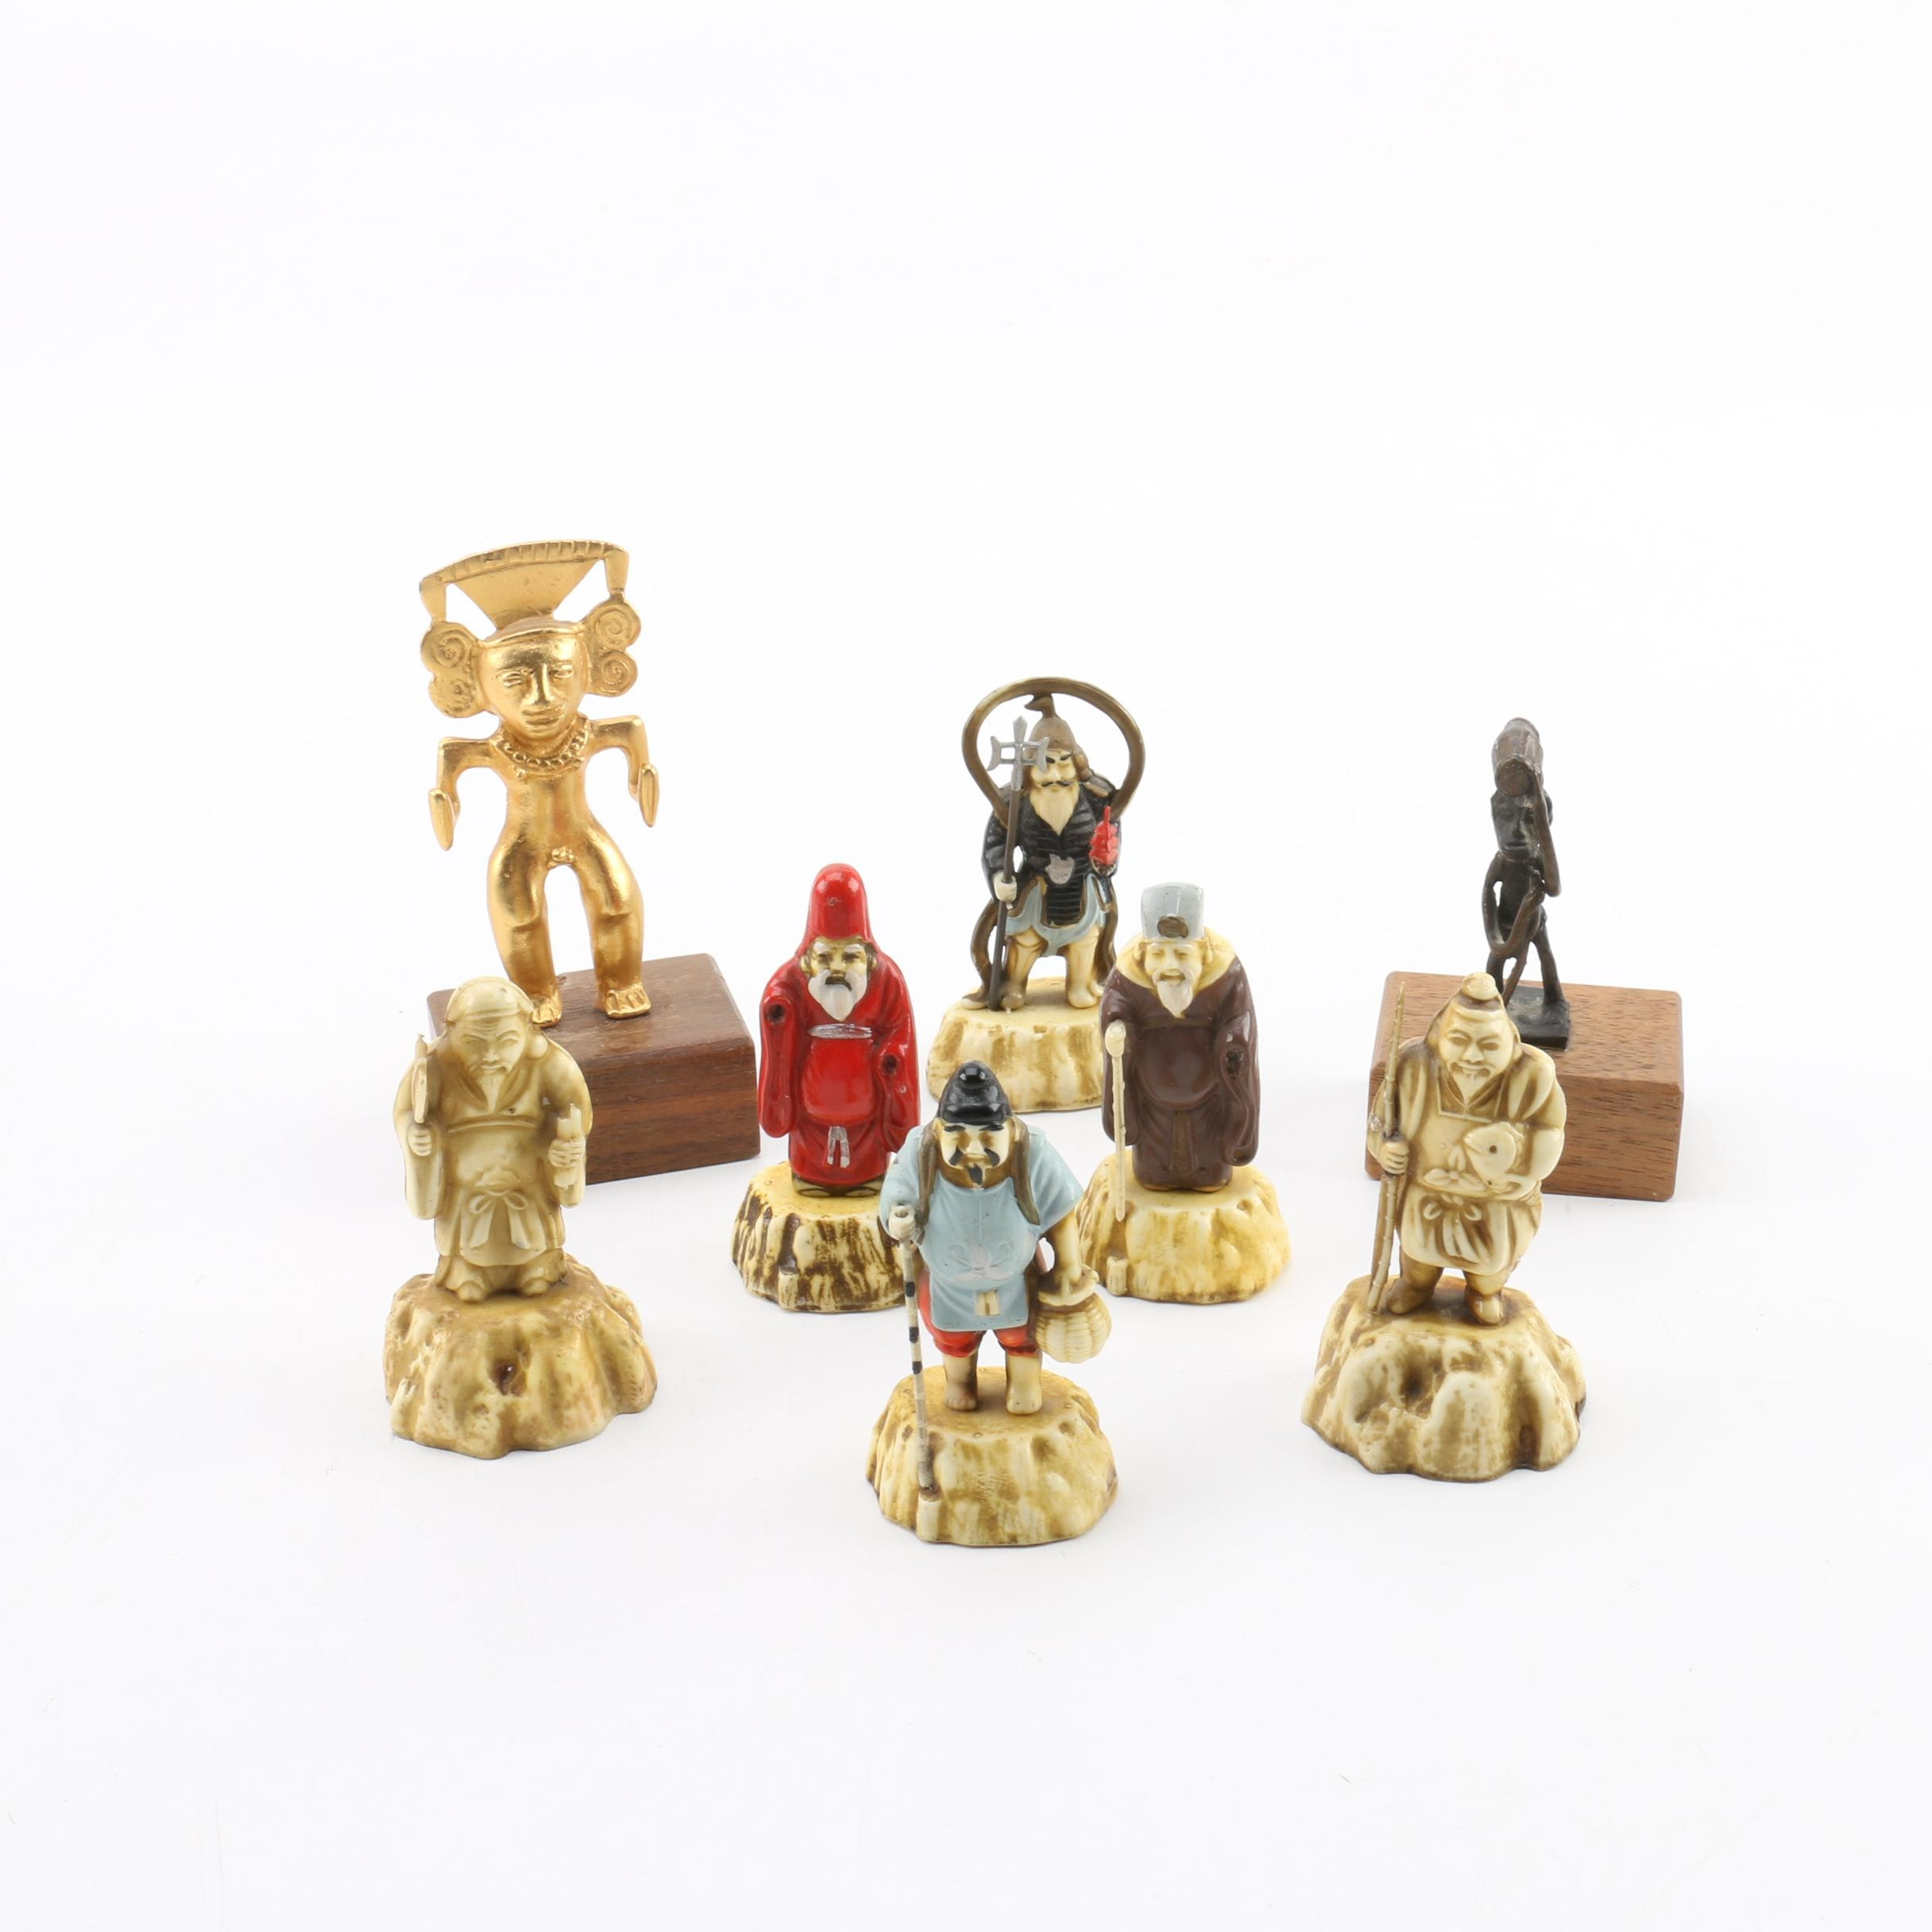 Artifact Replicas and East Asian Figurines